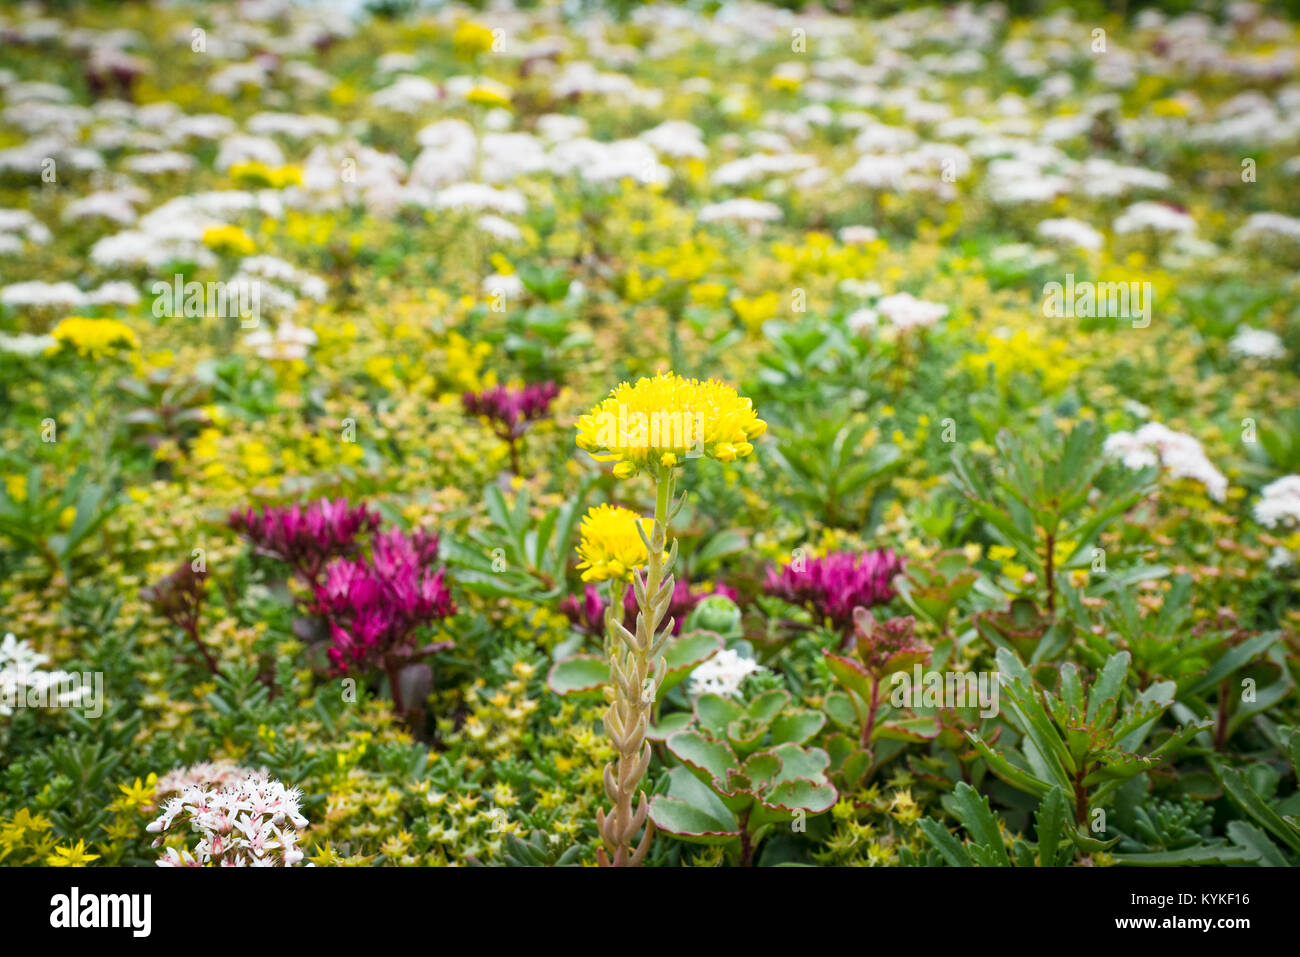 Flowers on a meadow in the summer in a variety of colors - Stock Image